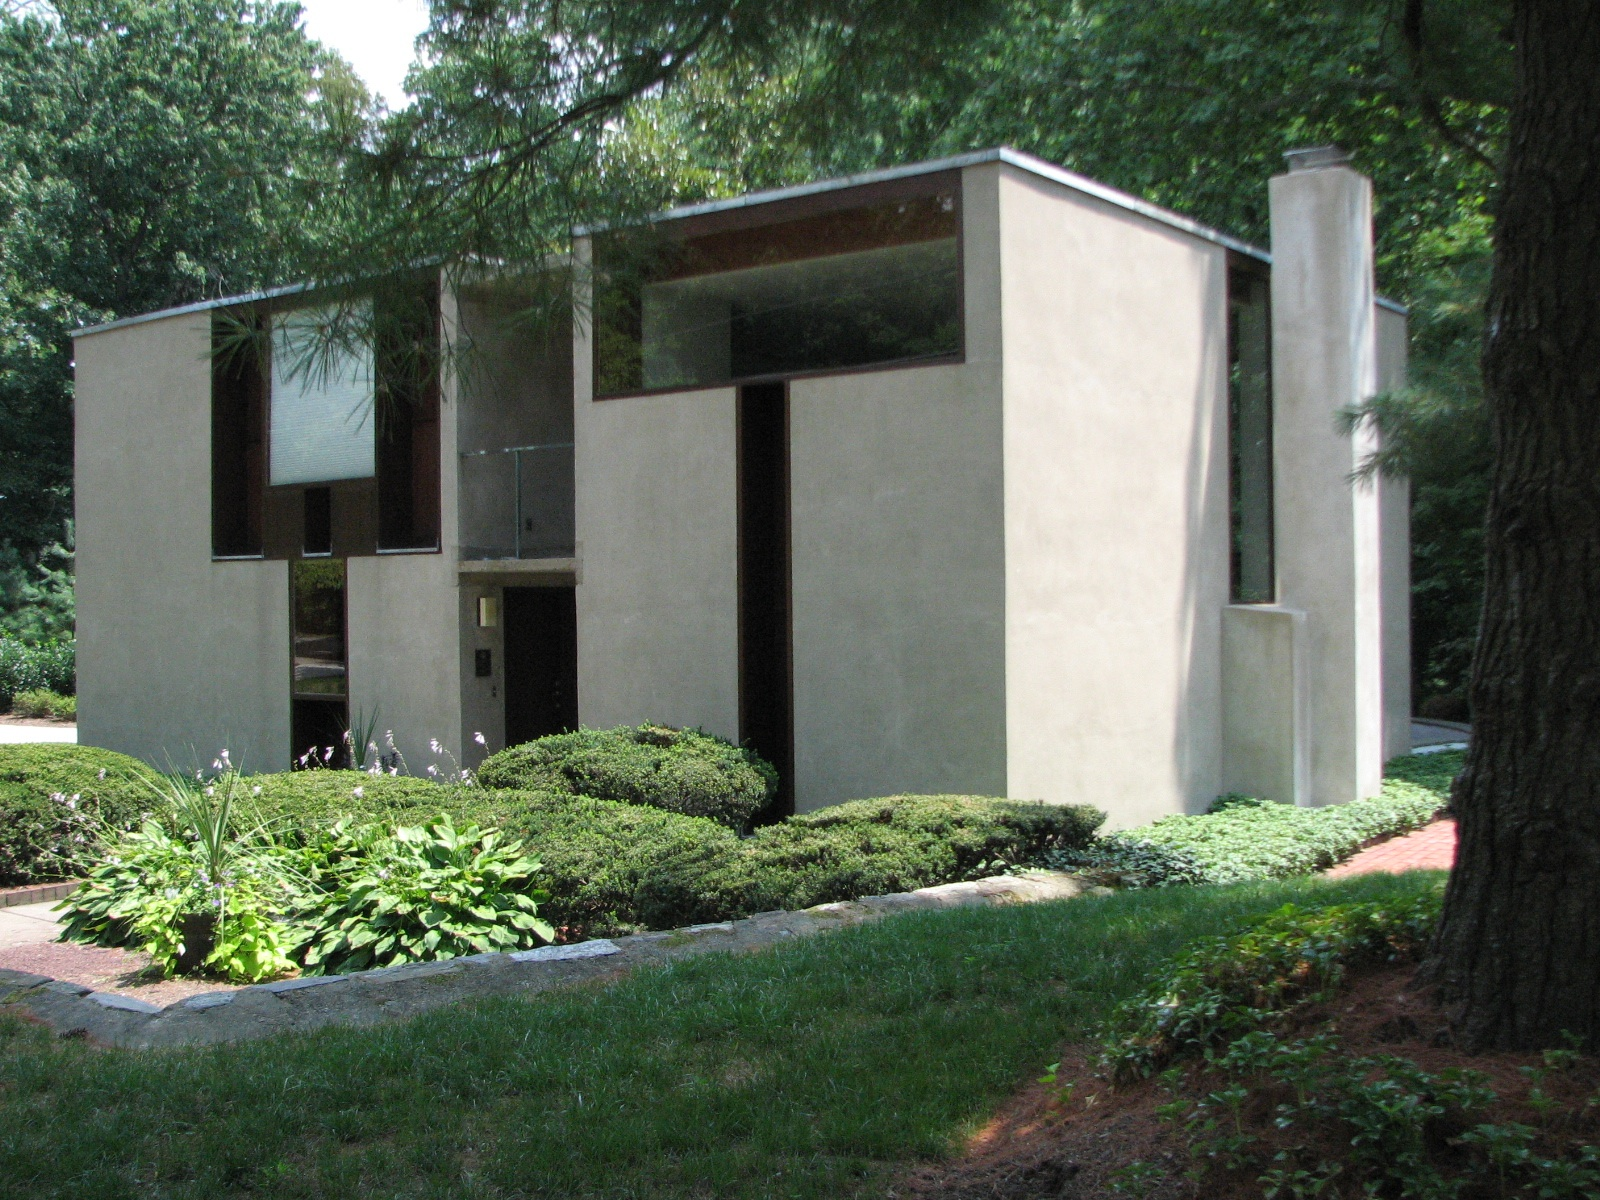 sites-planphilly-com-files-kahn_house-jpg